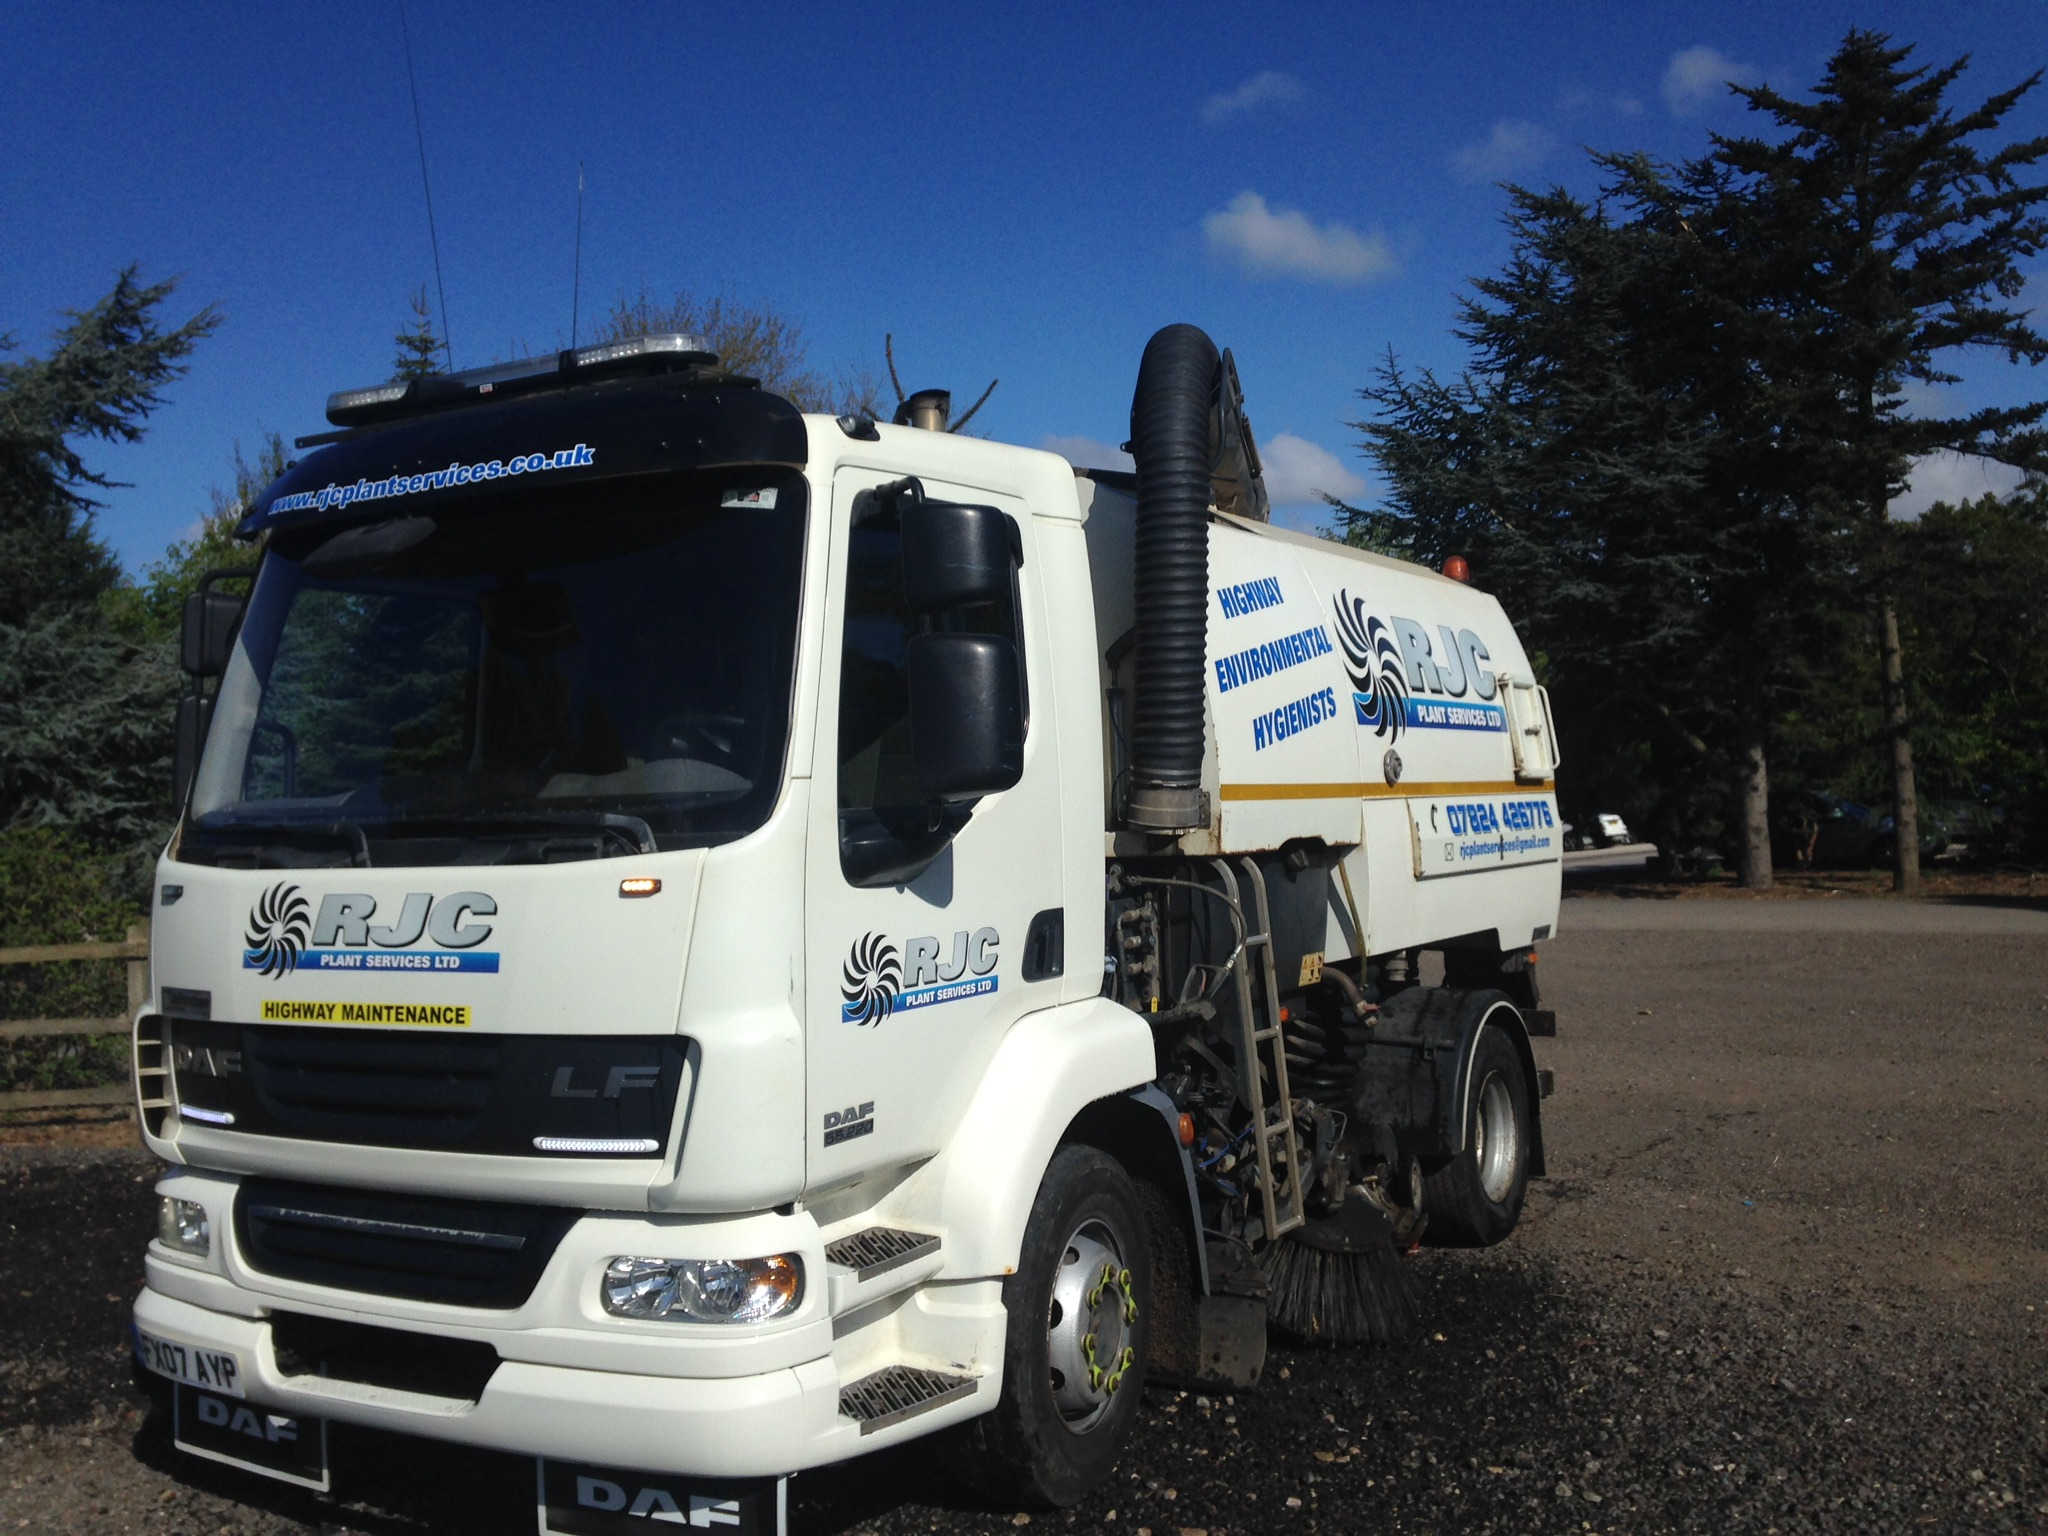 Roadsweeper hire services